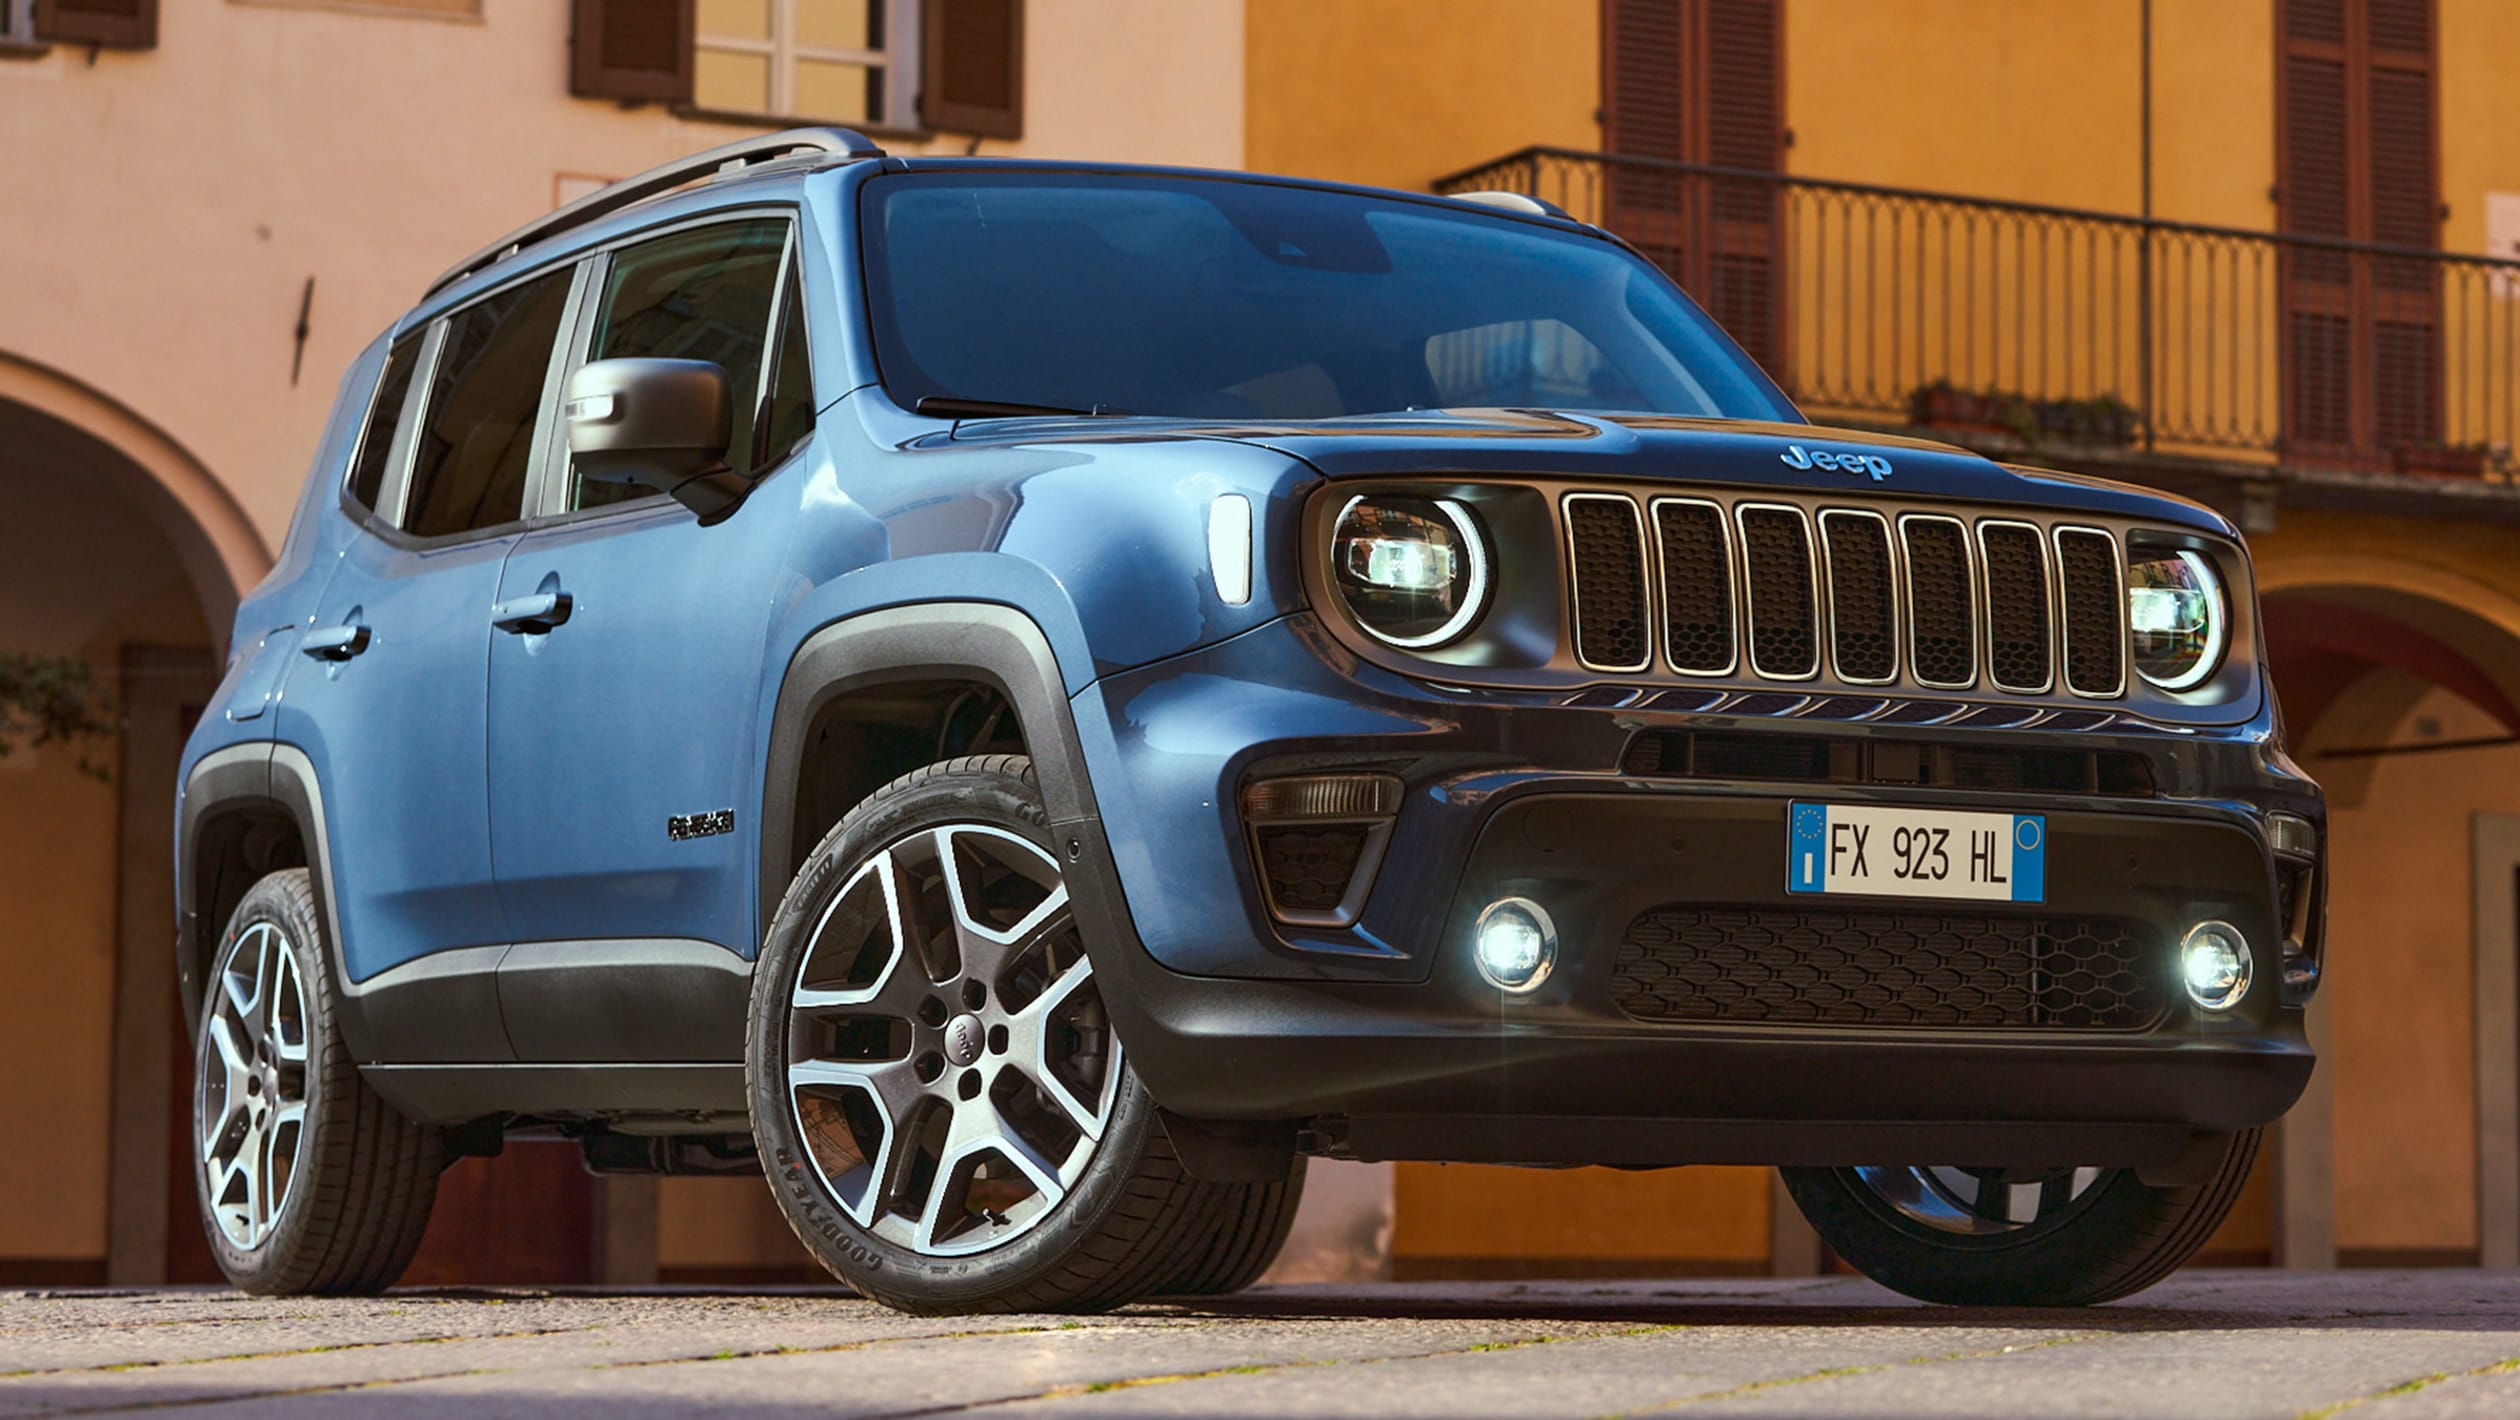 2014 - [Jeep] Renegade - Page 15 Jeep%20Renegade%204xe%202020-9